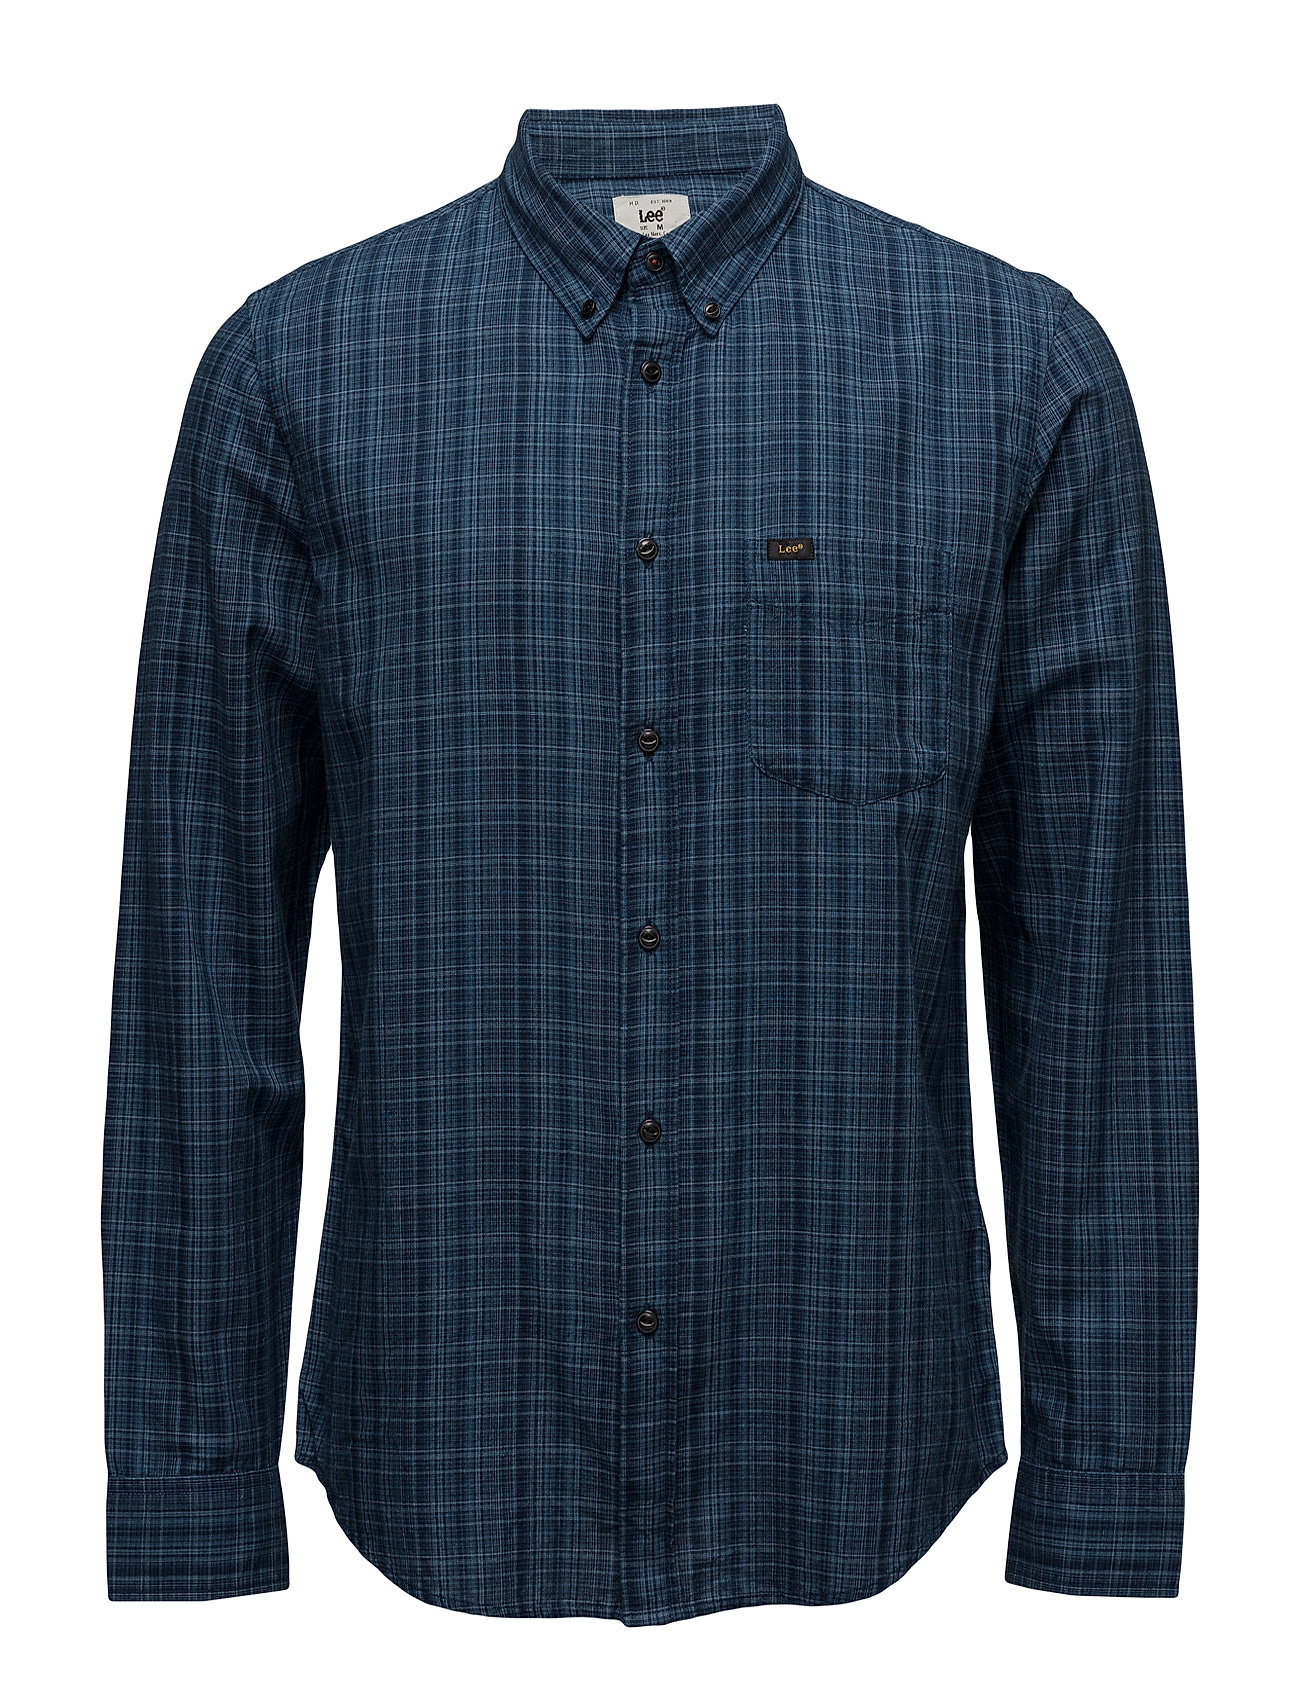 Lee Button Down Deep Indigo Lee Jeans Casual sko til Mænd i Deep Indigo